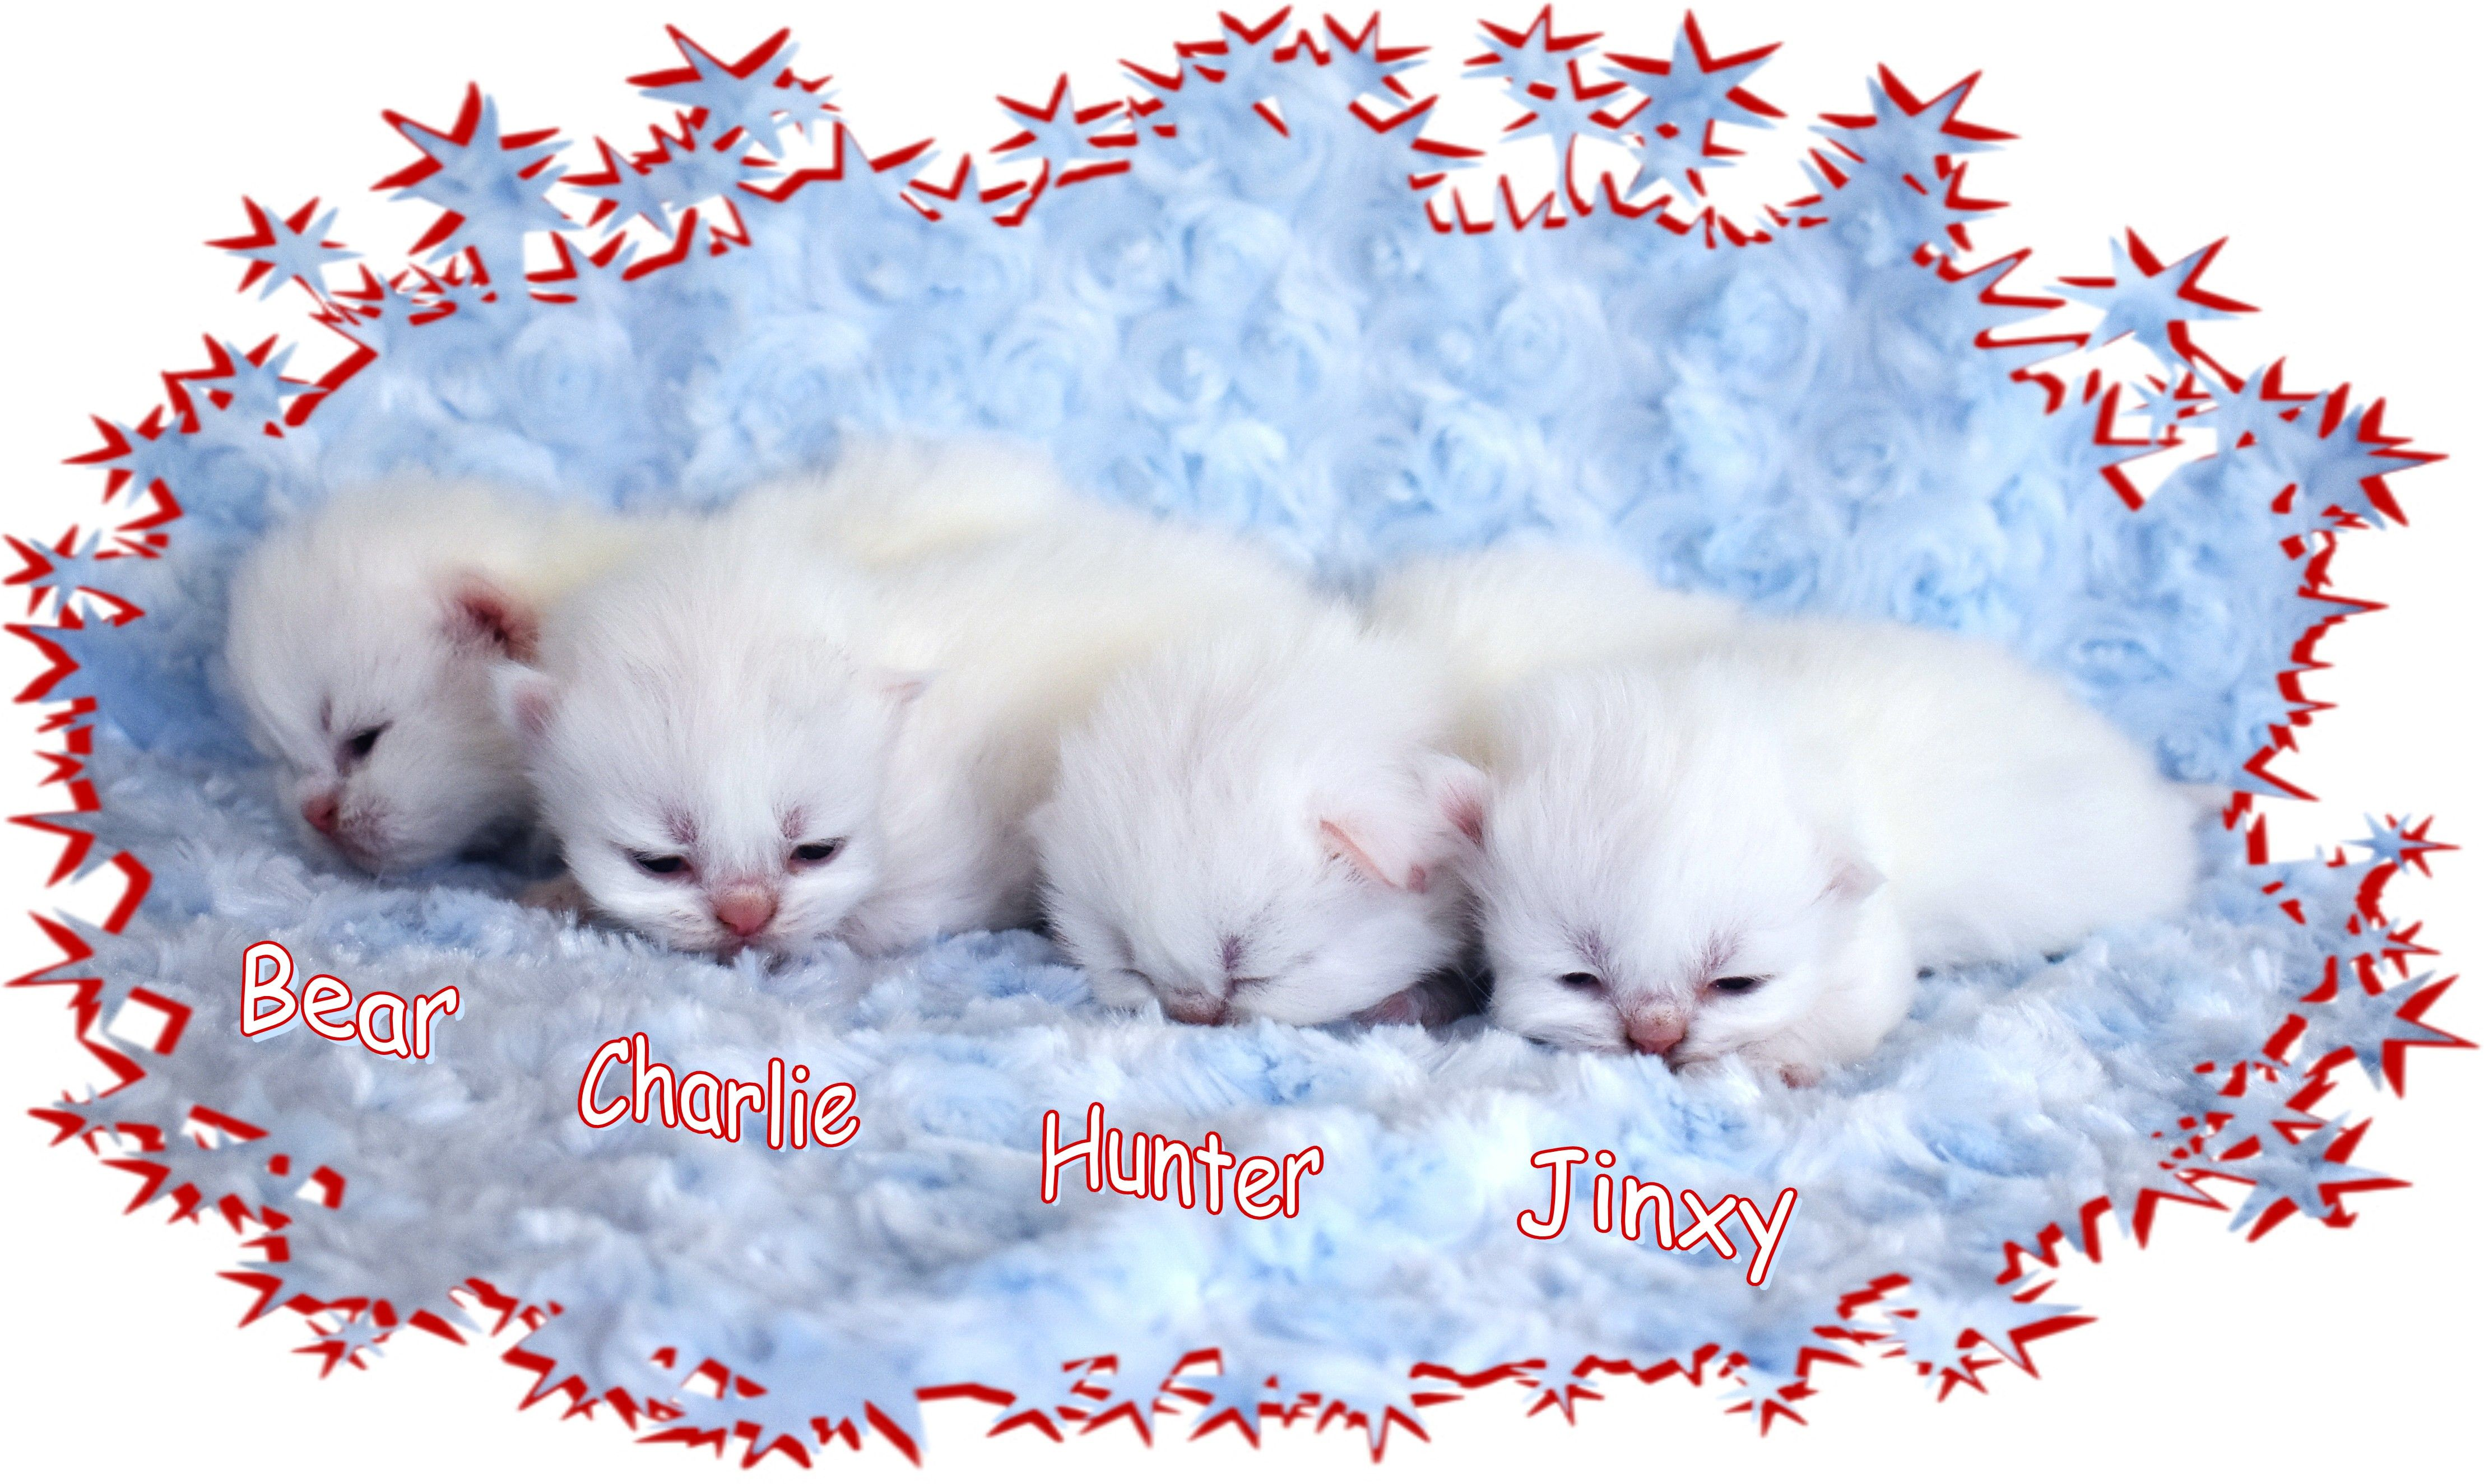 White Teacup Persian Kittens Available Reserve Now And Receive A 500 Discount Teacup Persian Kittens Persian Kittens Kitten For Sale